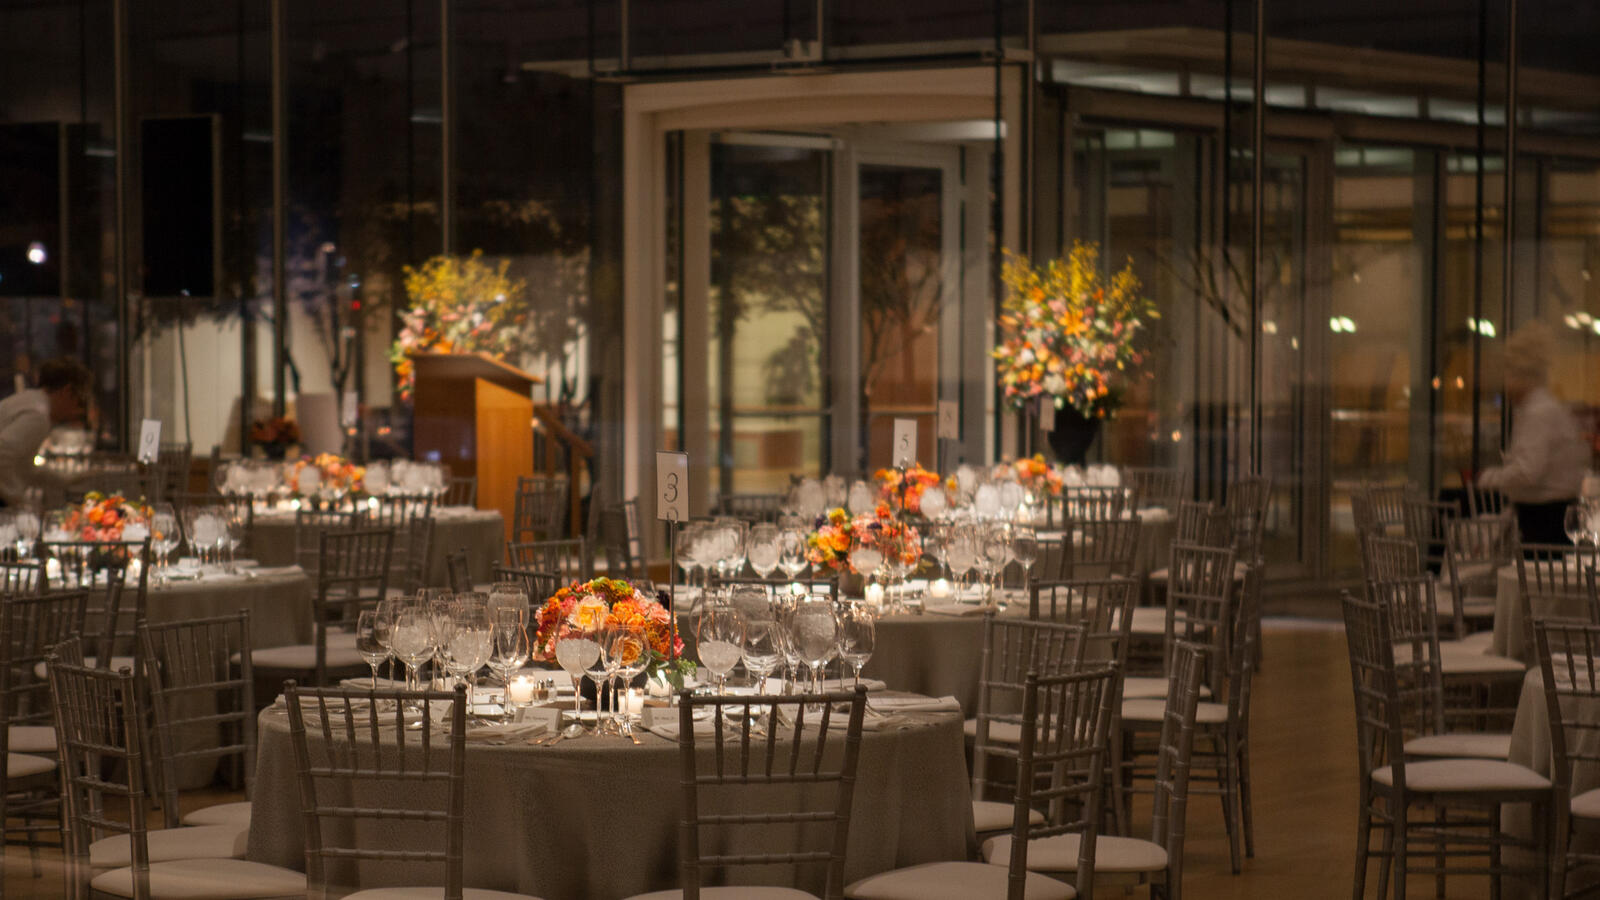 Rentals for dinners and events